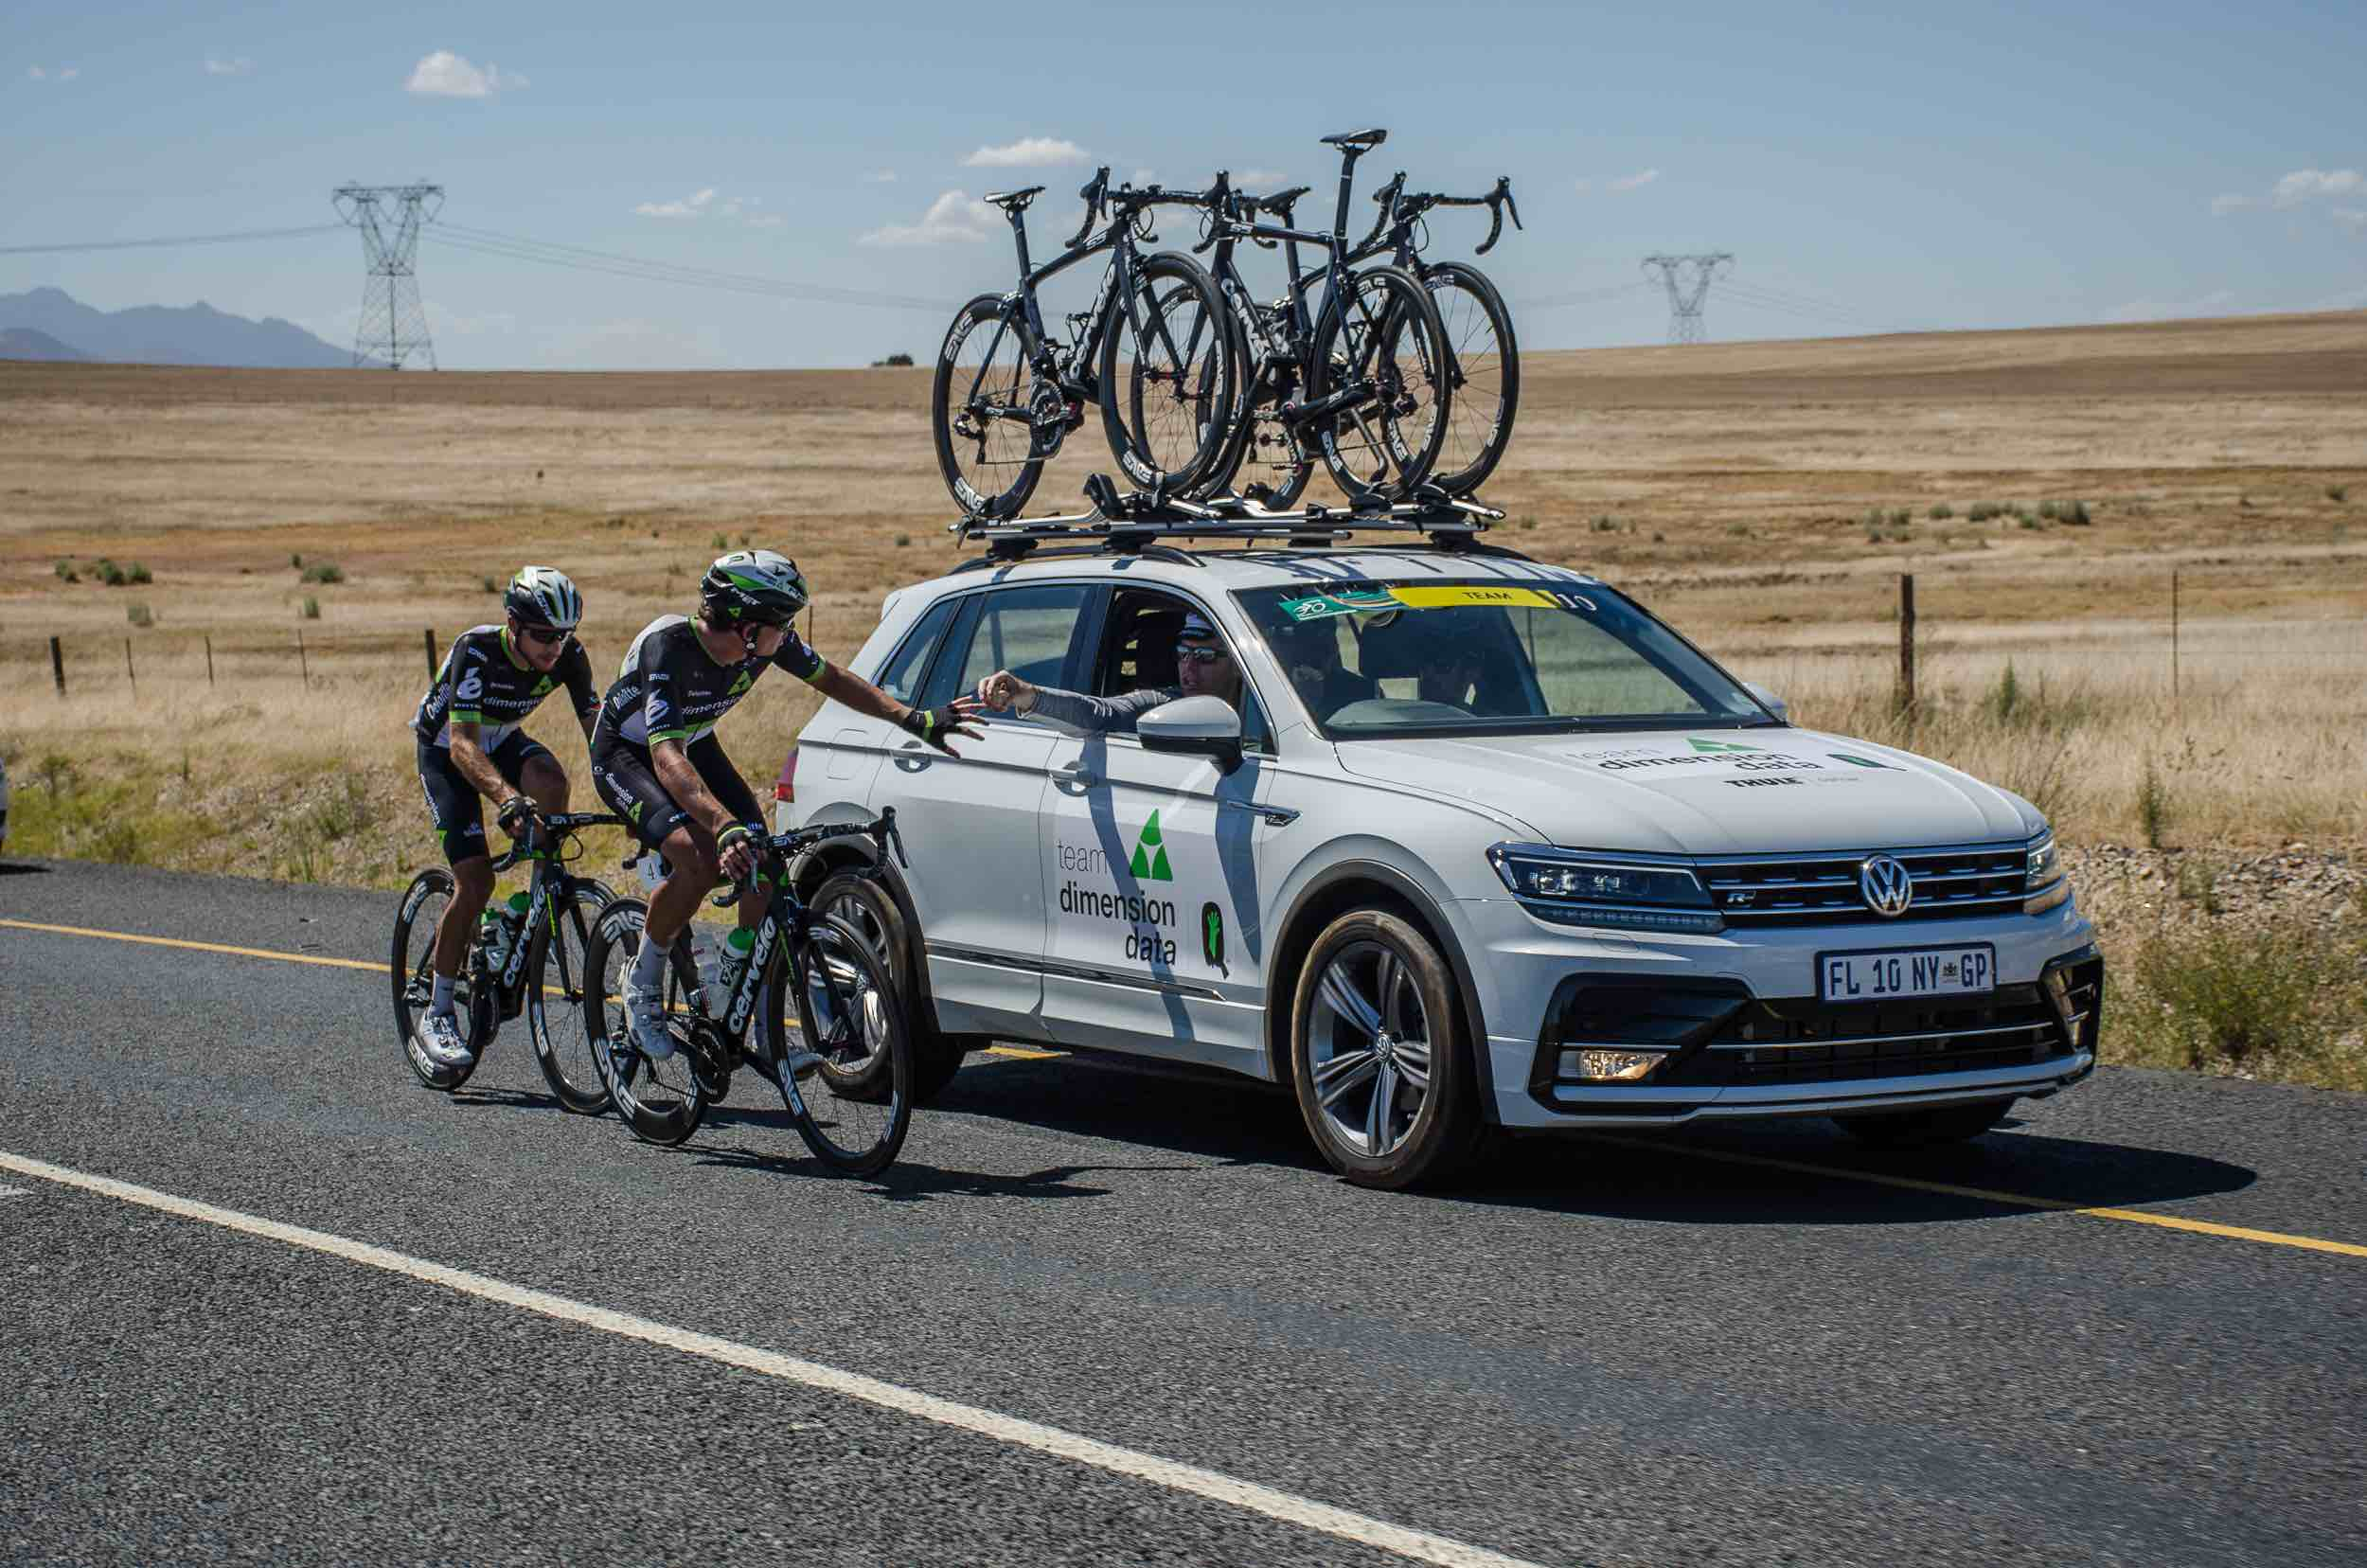 South Africa's Team Dimension Data for Qhubeka (pictured here at the SA National Road Championships) and other International riders relish the opportunity to compete in an Elite International Road Cycling Stage Race on South African soil. The cycle tour, created by Cycling South Africa and SweetSpot, is scheduled to be held in the first quarter of 2018. Photo credit: Stuart Pickering/Cycling Direct